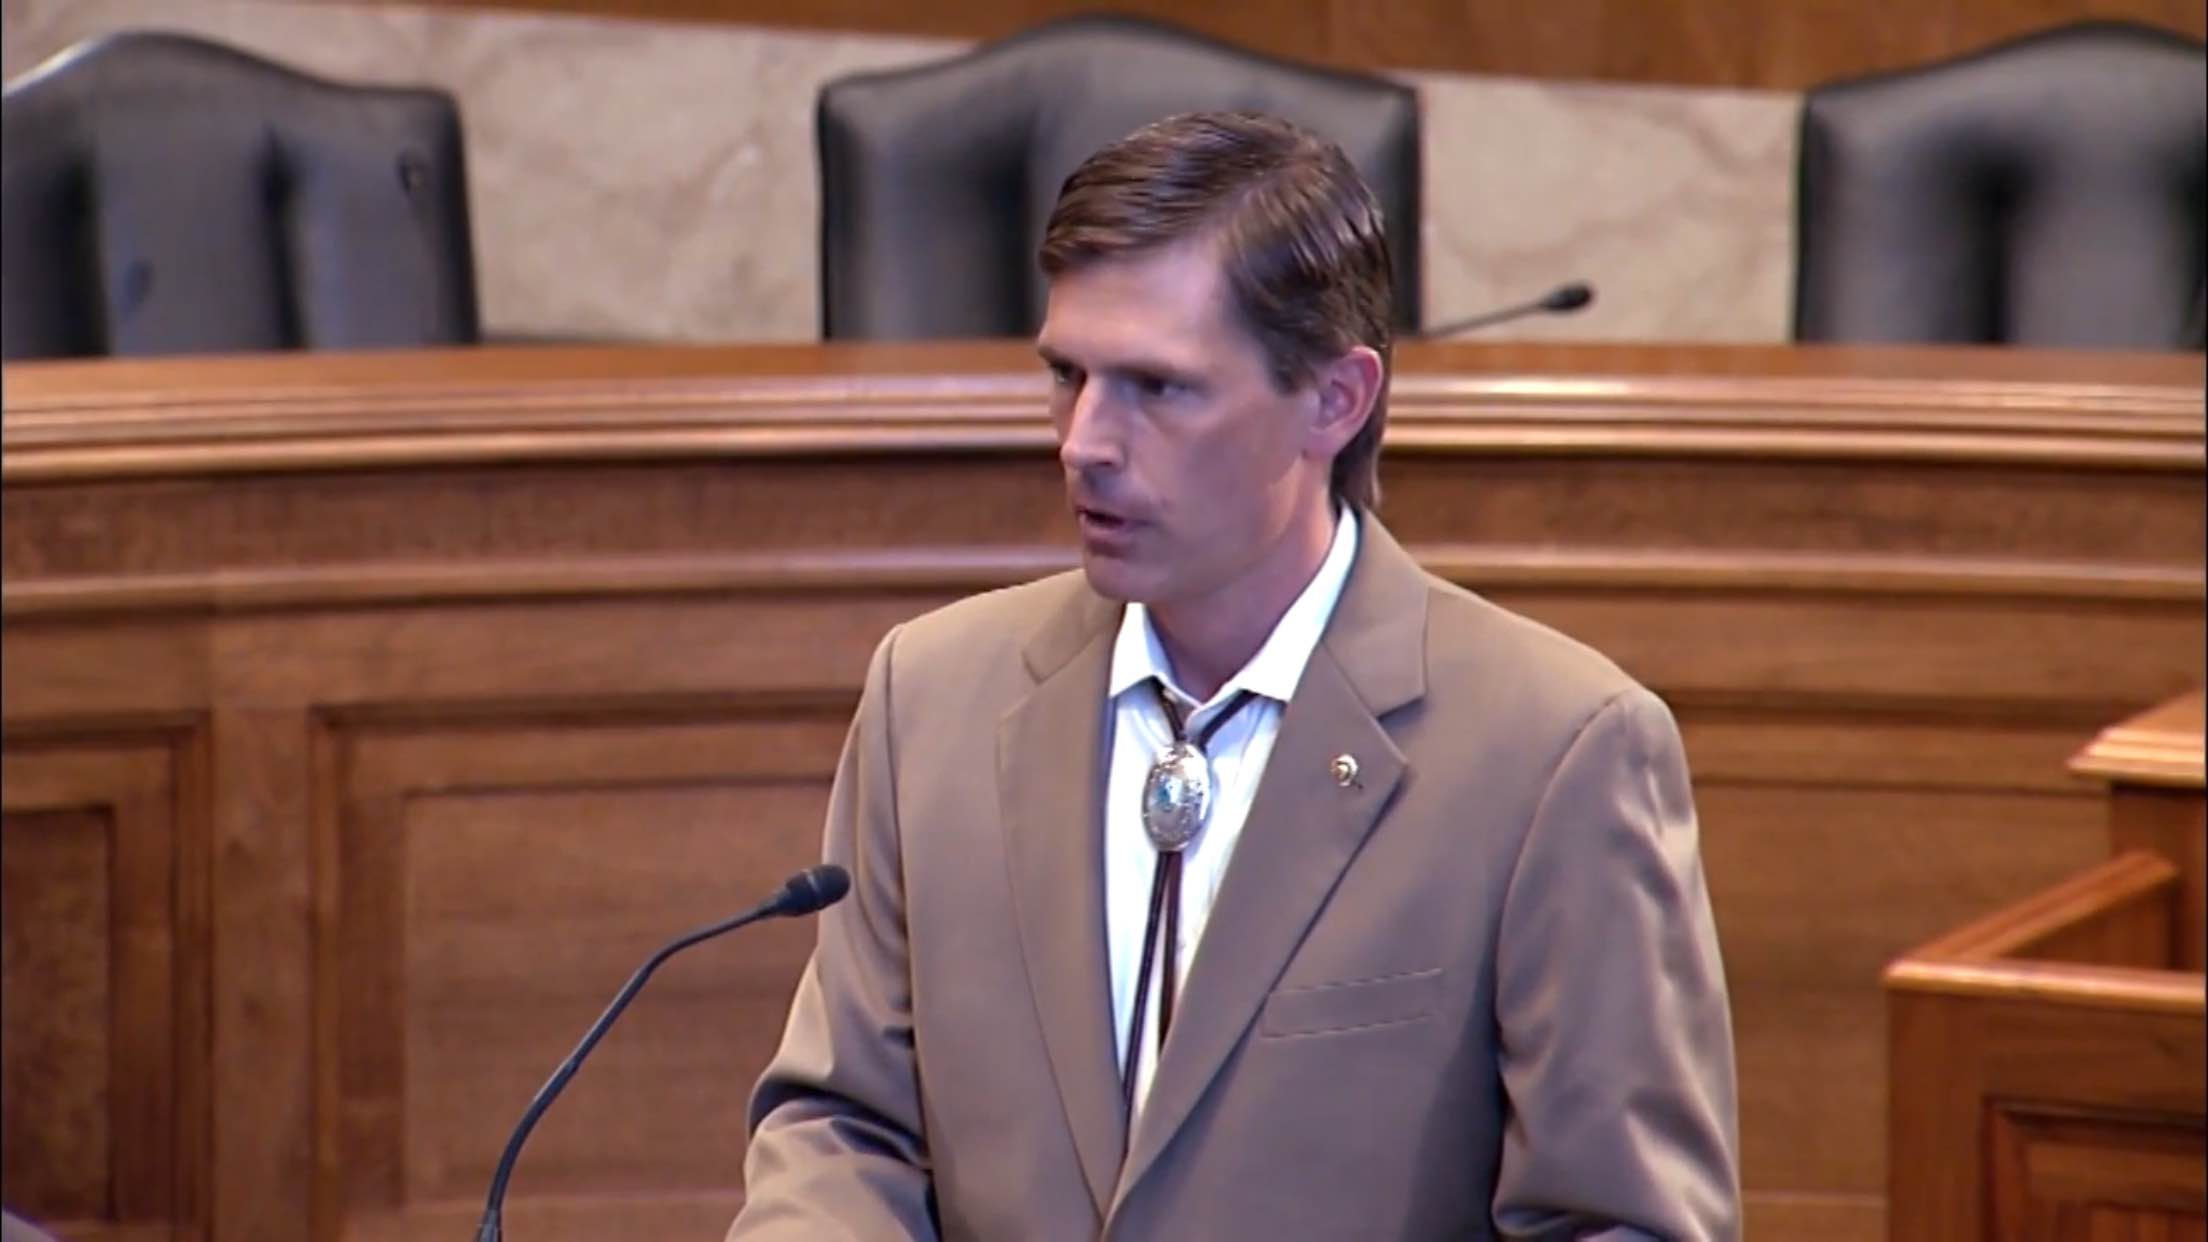 Martin Heinrich, junior Senator from New Mexico speaking in Washington D.C. about the STOP Act. (Screenshot courtesy of Office of Martin Heinrich)